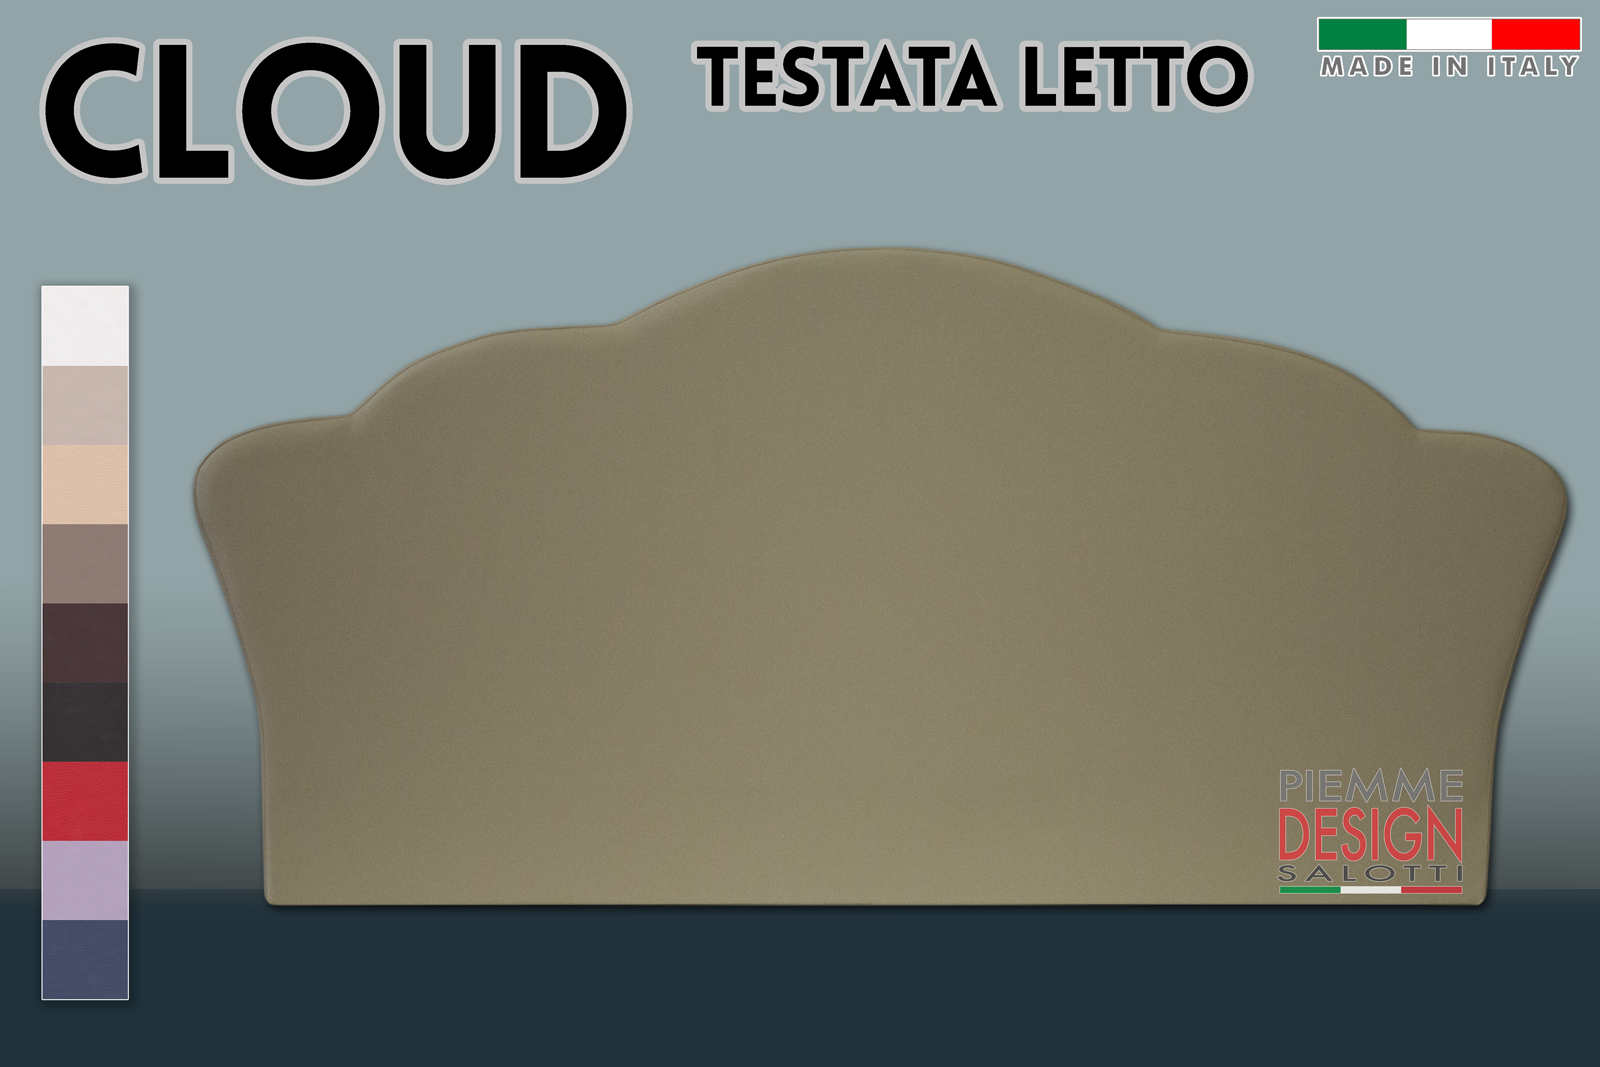 mod_cloud_sito_1.png